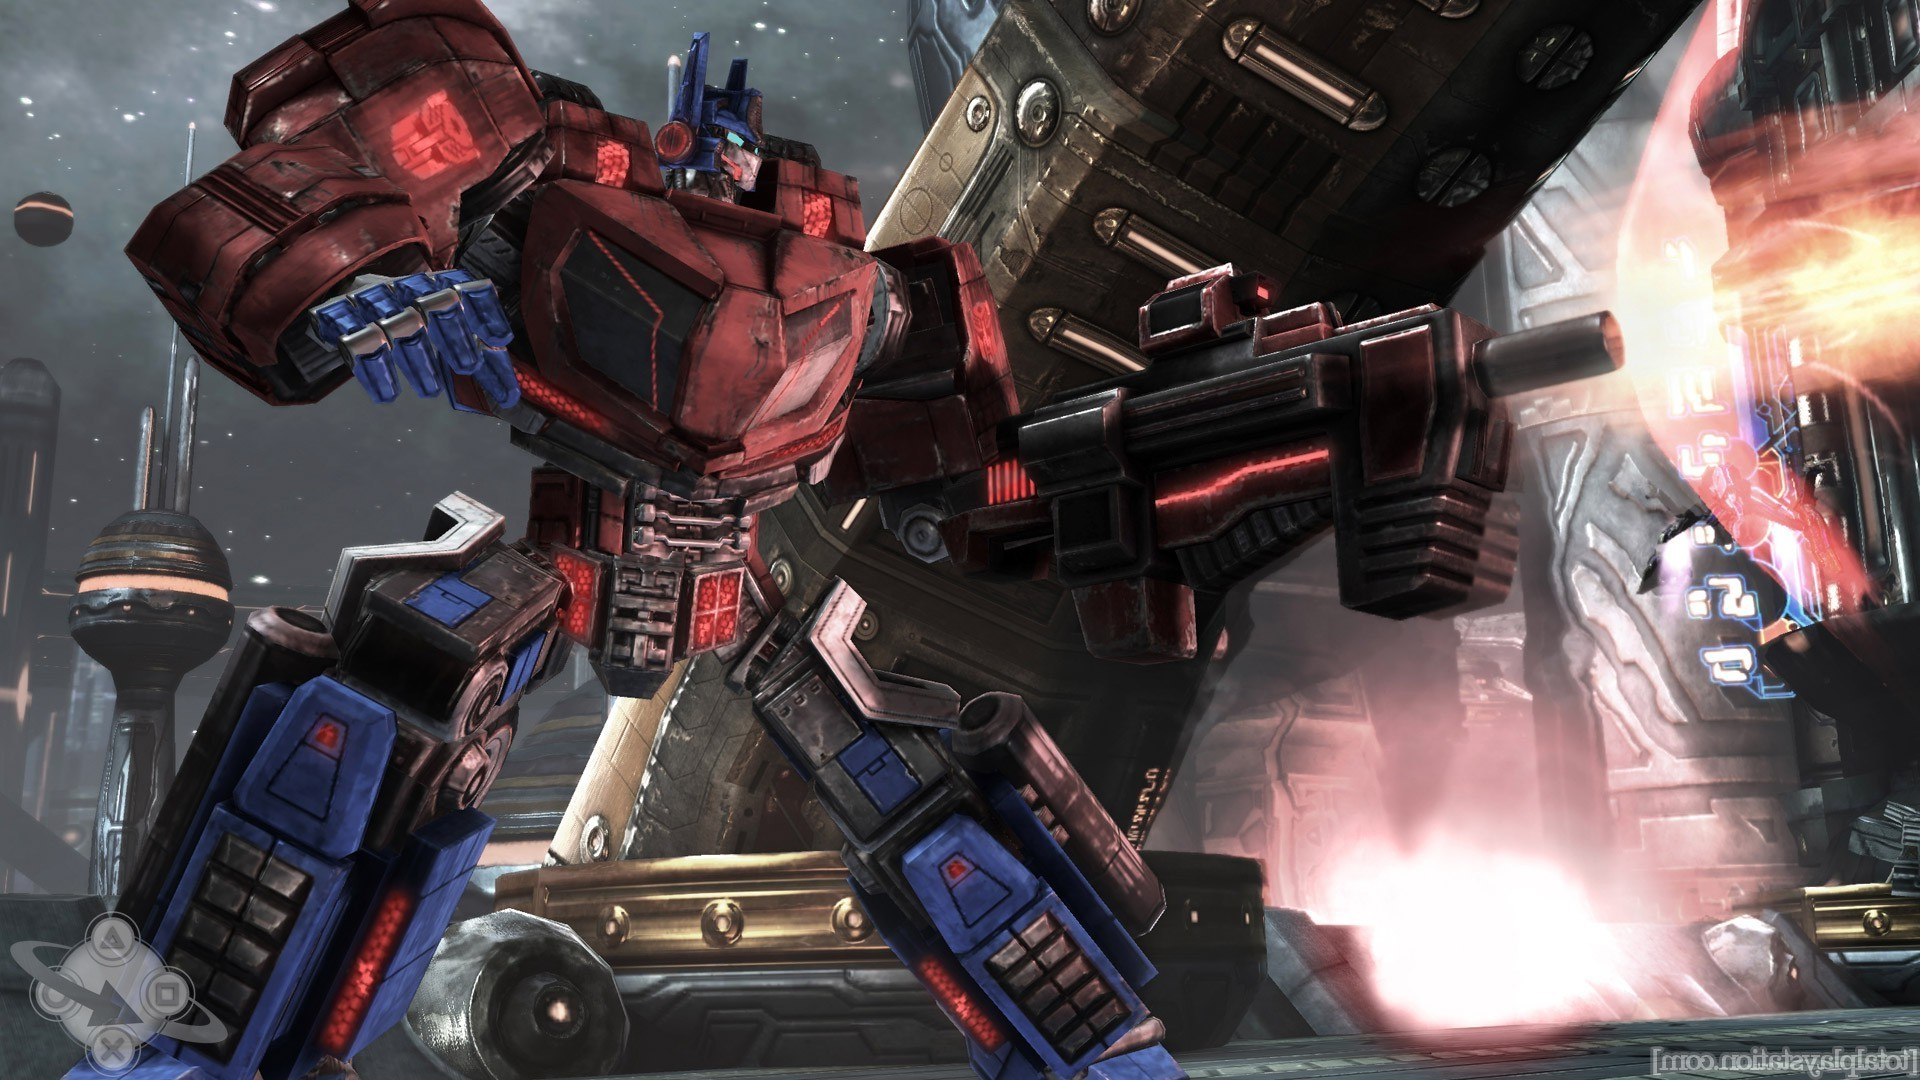 Transformers, Optimus Prime Wallpapers HD / Desktop and Mobile Backgrounds